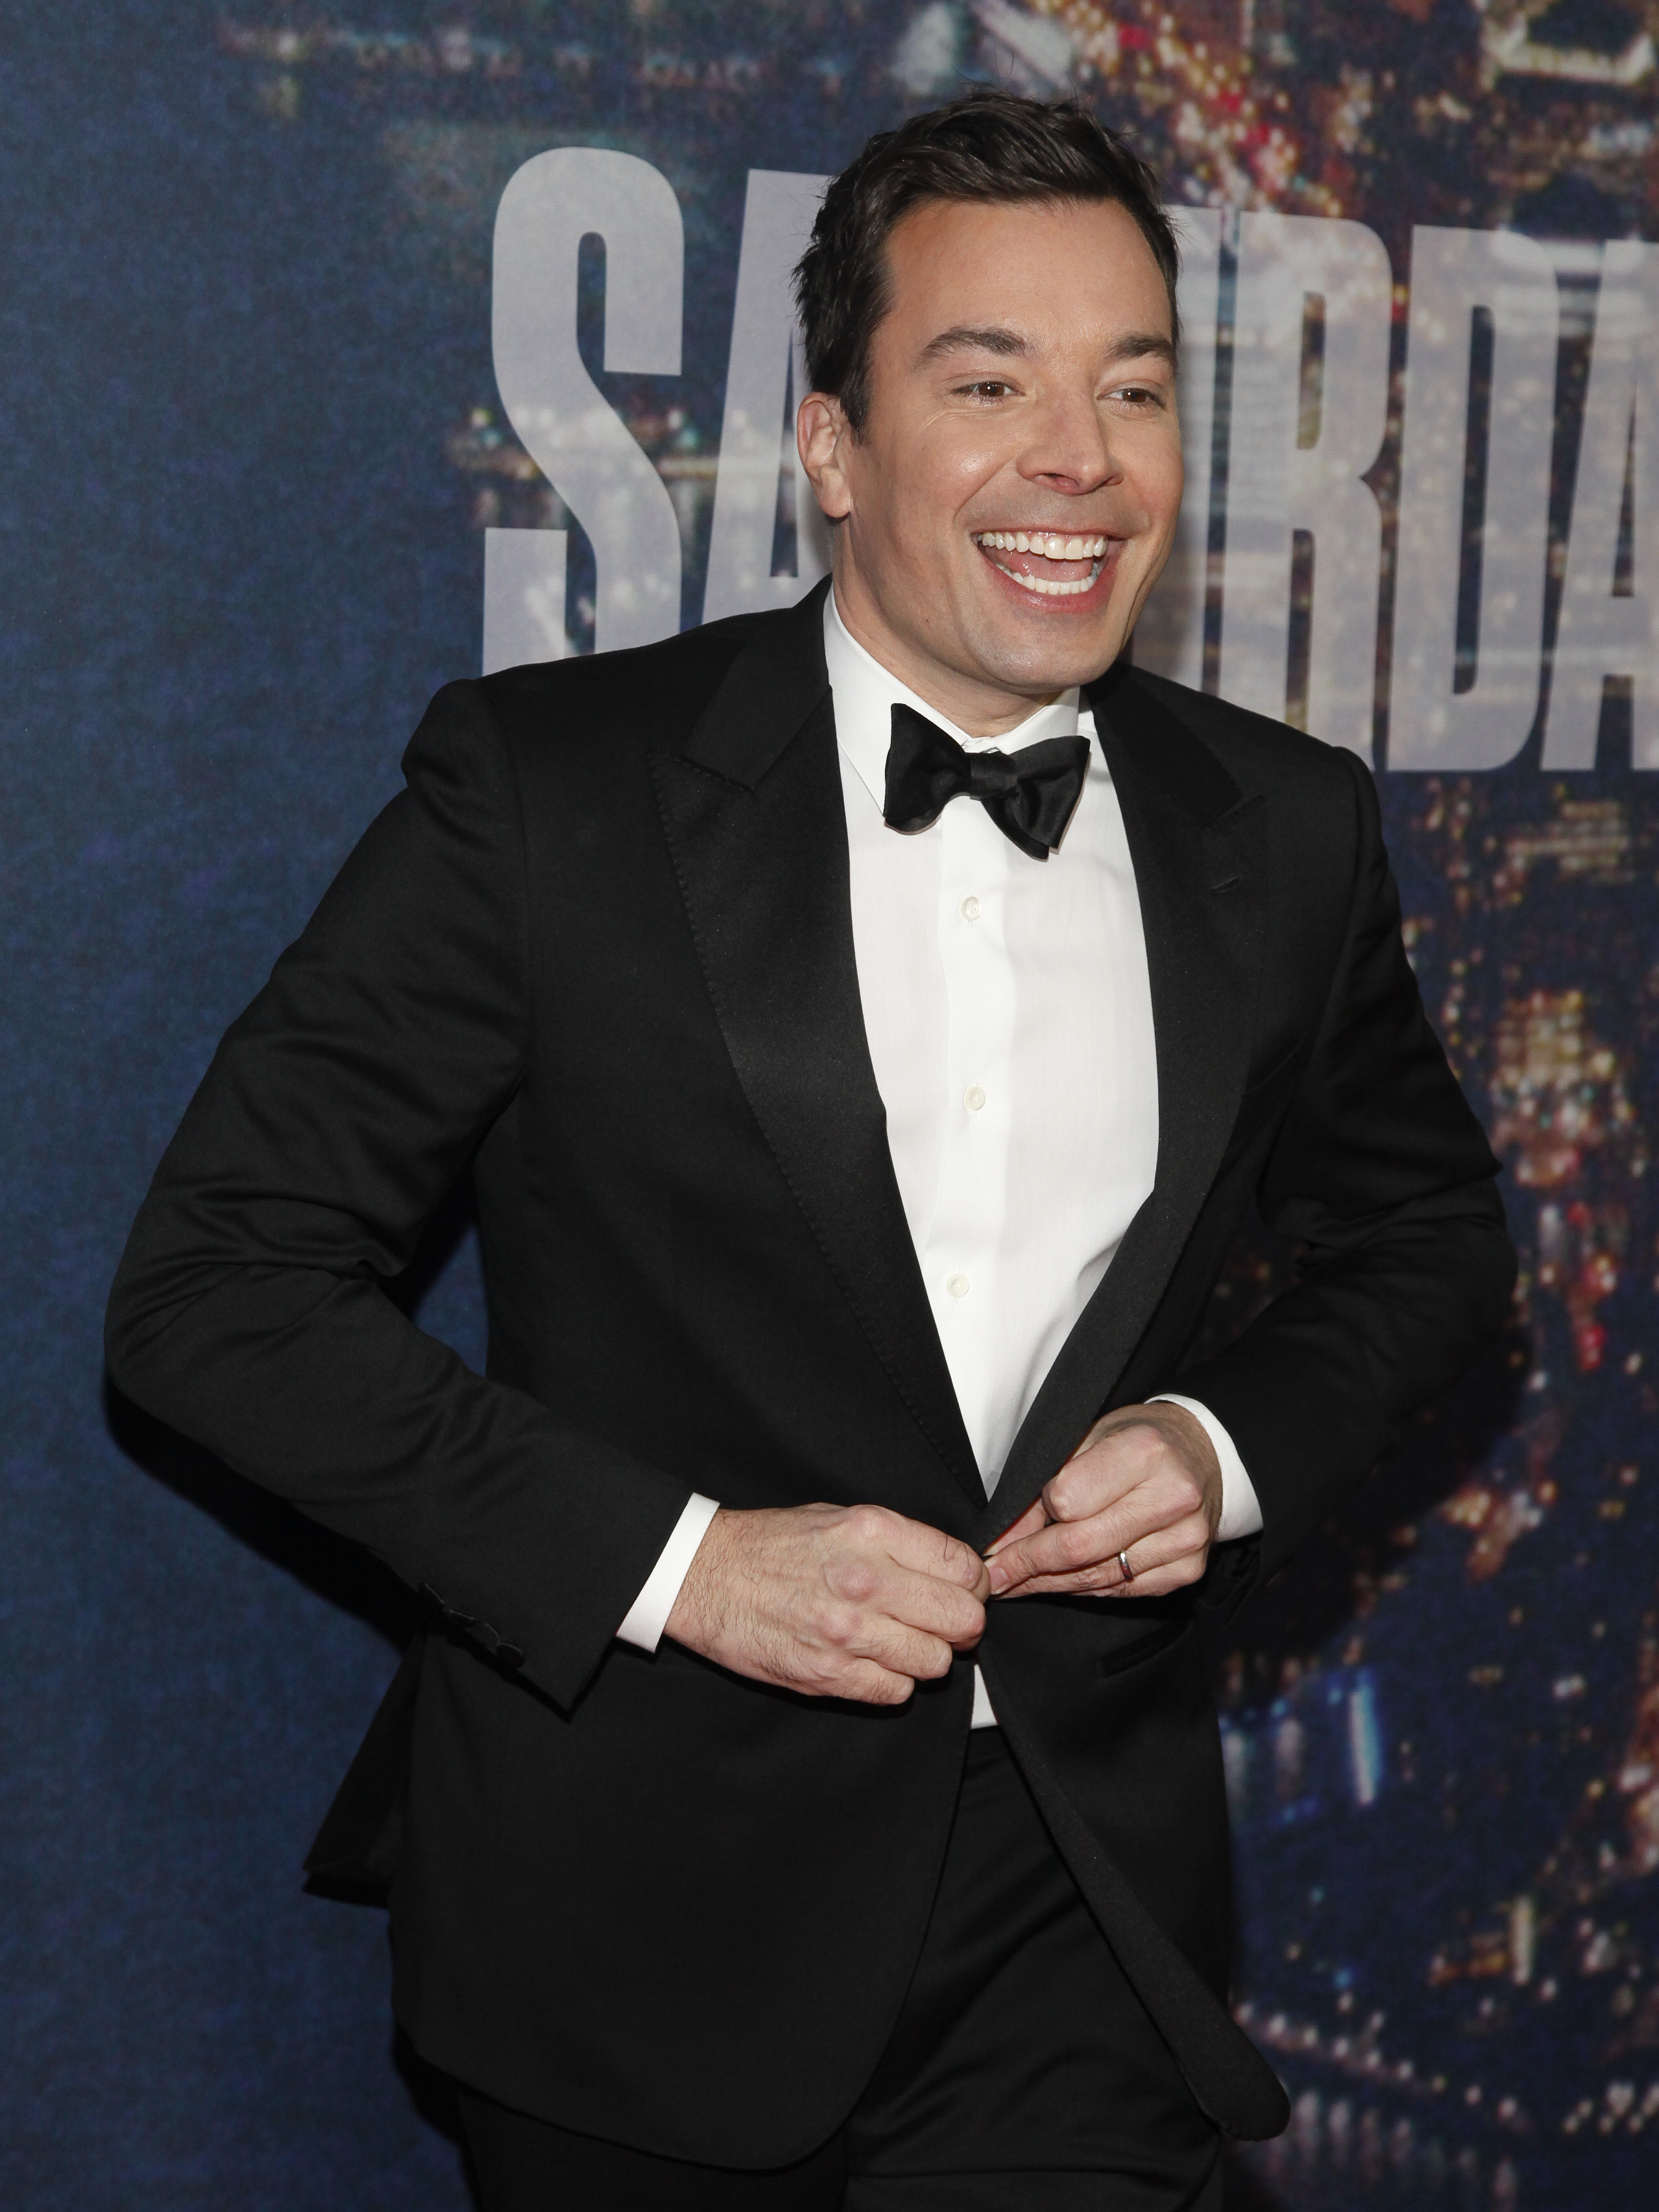 Jimmy Fallon attends the SNL 40th Anniversary Special at Rockefeller Plaza in New York City on Feb. 15, 2015.